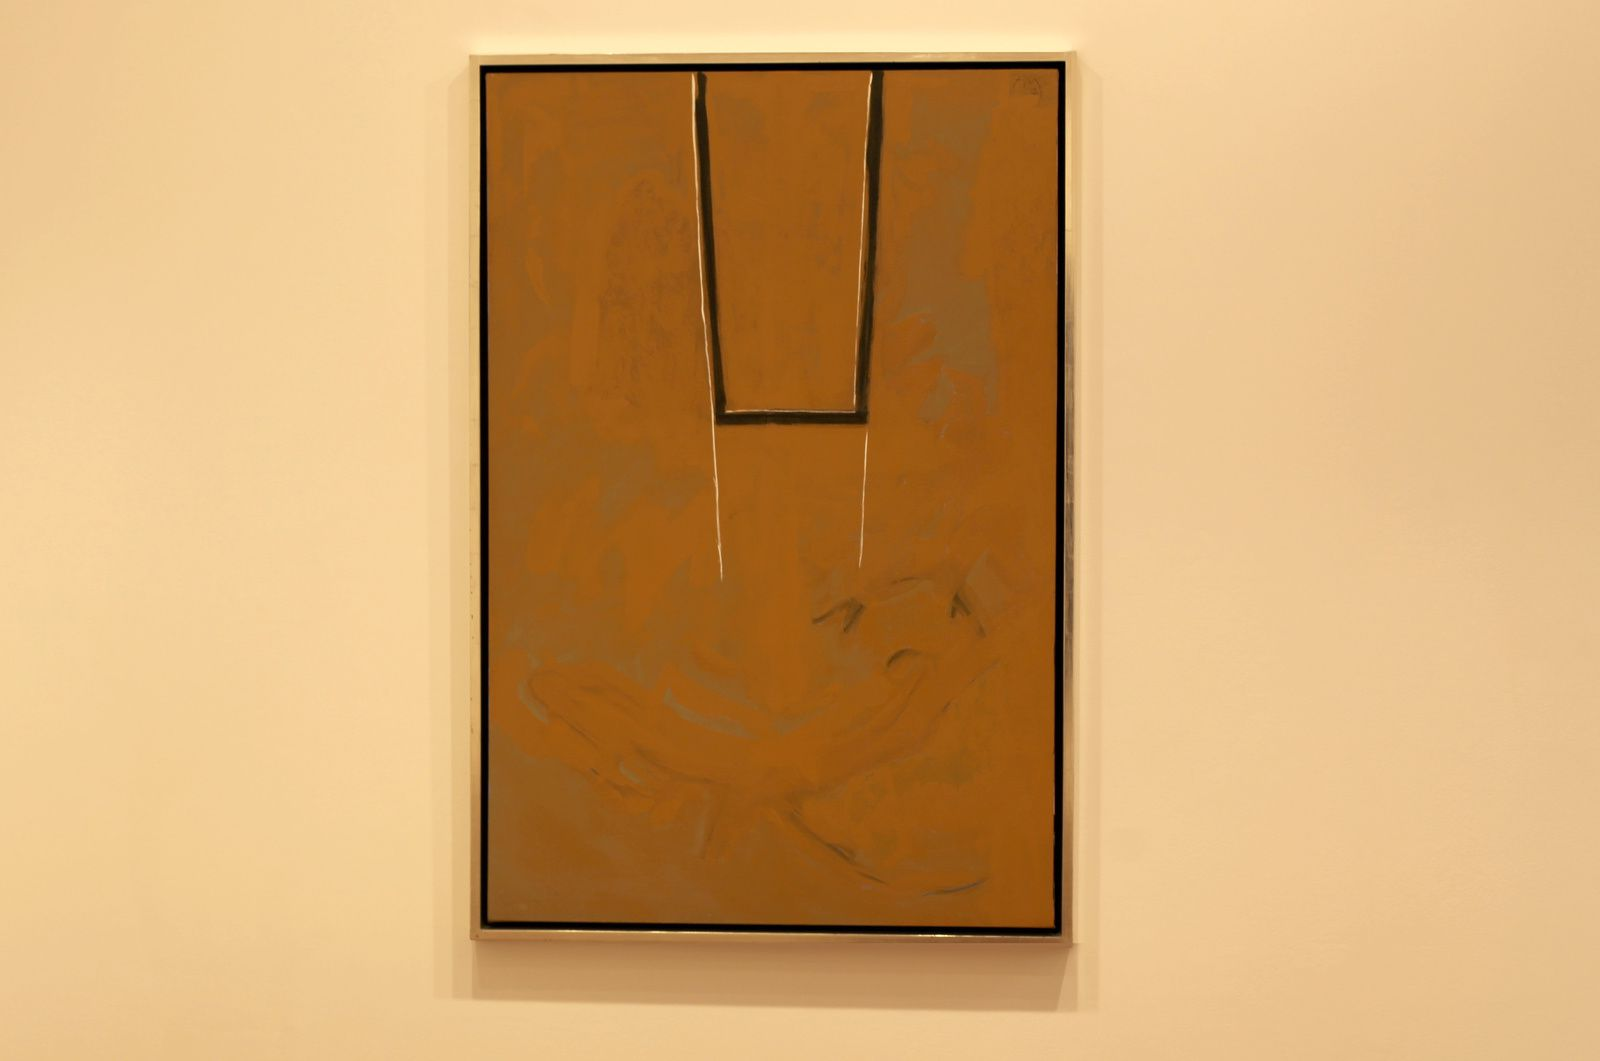 """Great wall of China #4"", 1971 de Robert MOTHERWELL - Courtesy Galerie Templon © Photo Éric Simon"